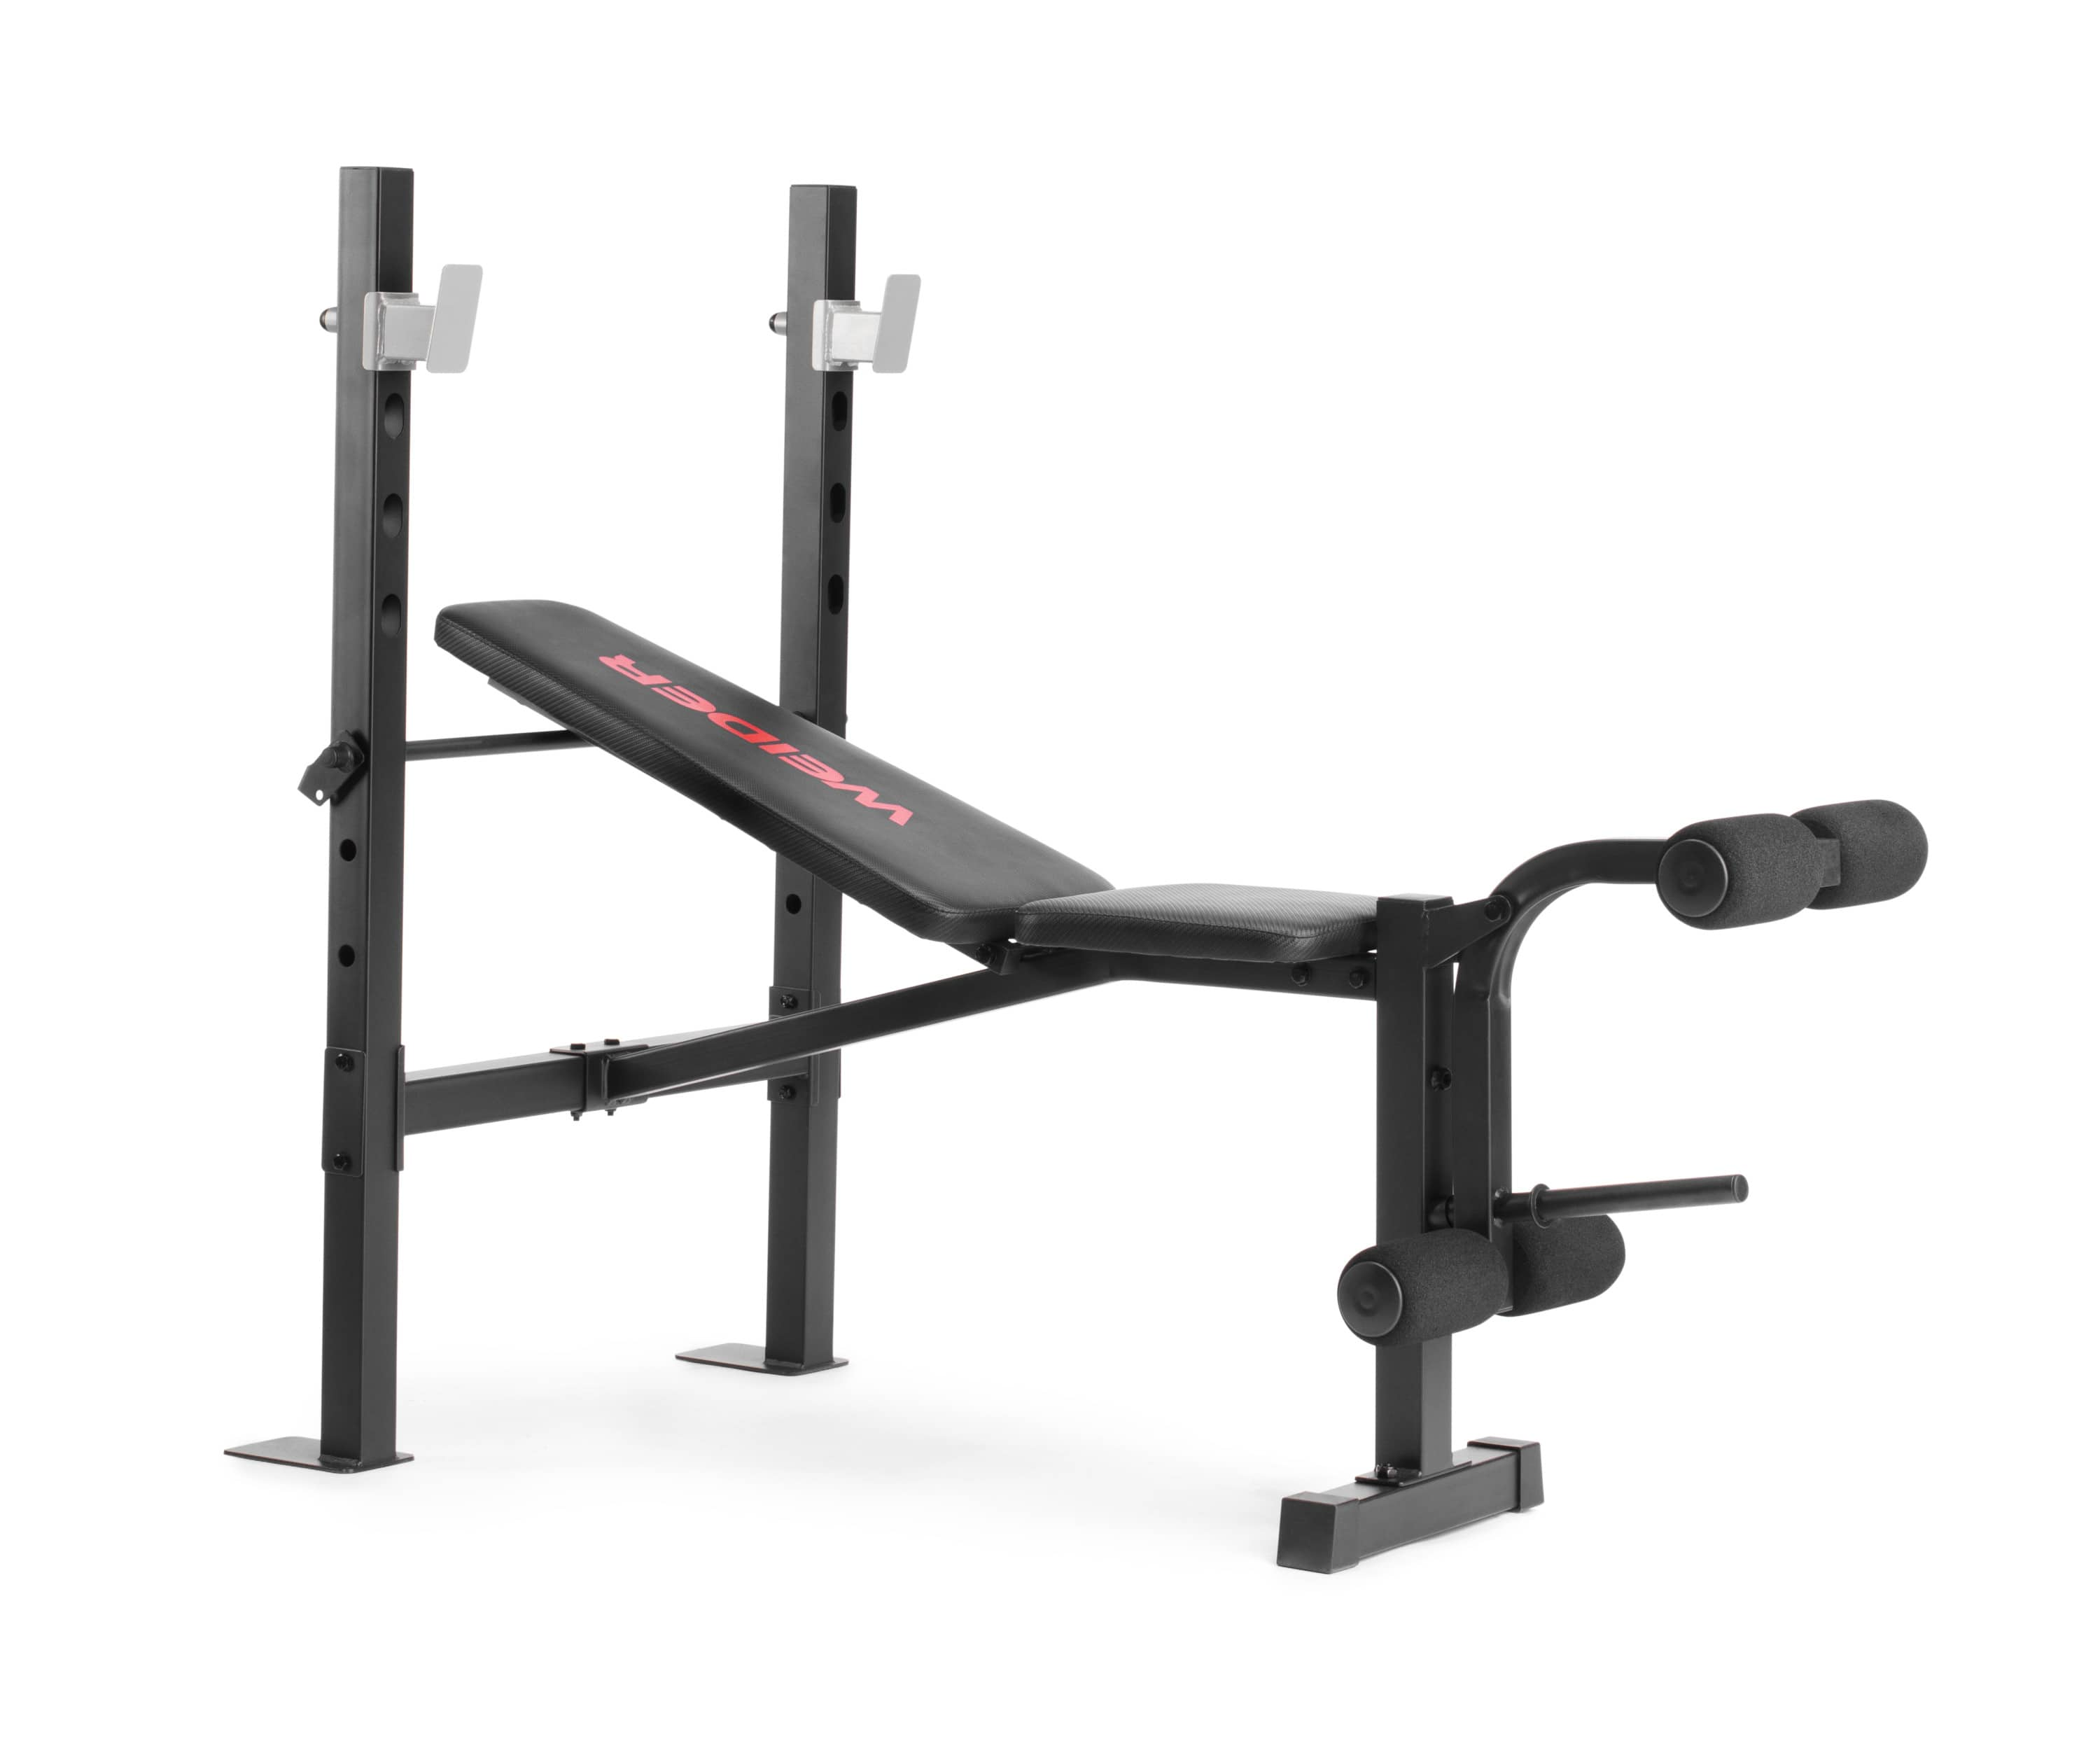 Weider Legacy Standard Weight Bench and Rack with Fixed Uprights, Foam Roll Leg Developer - $89